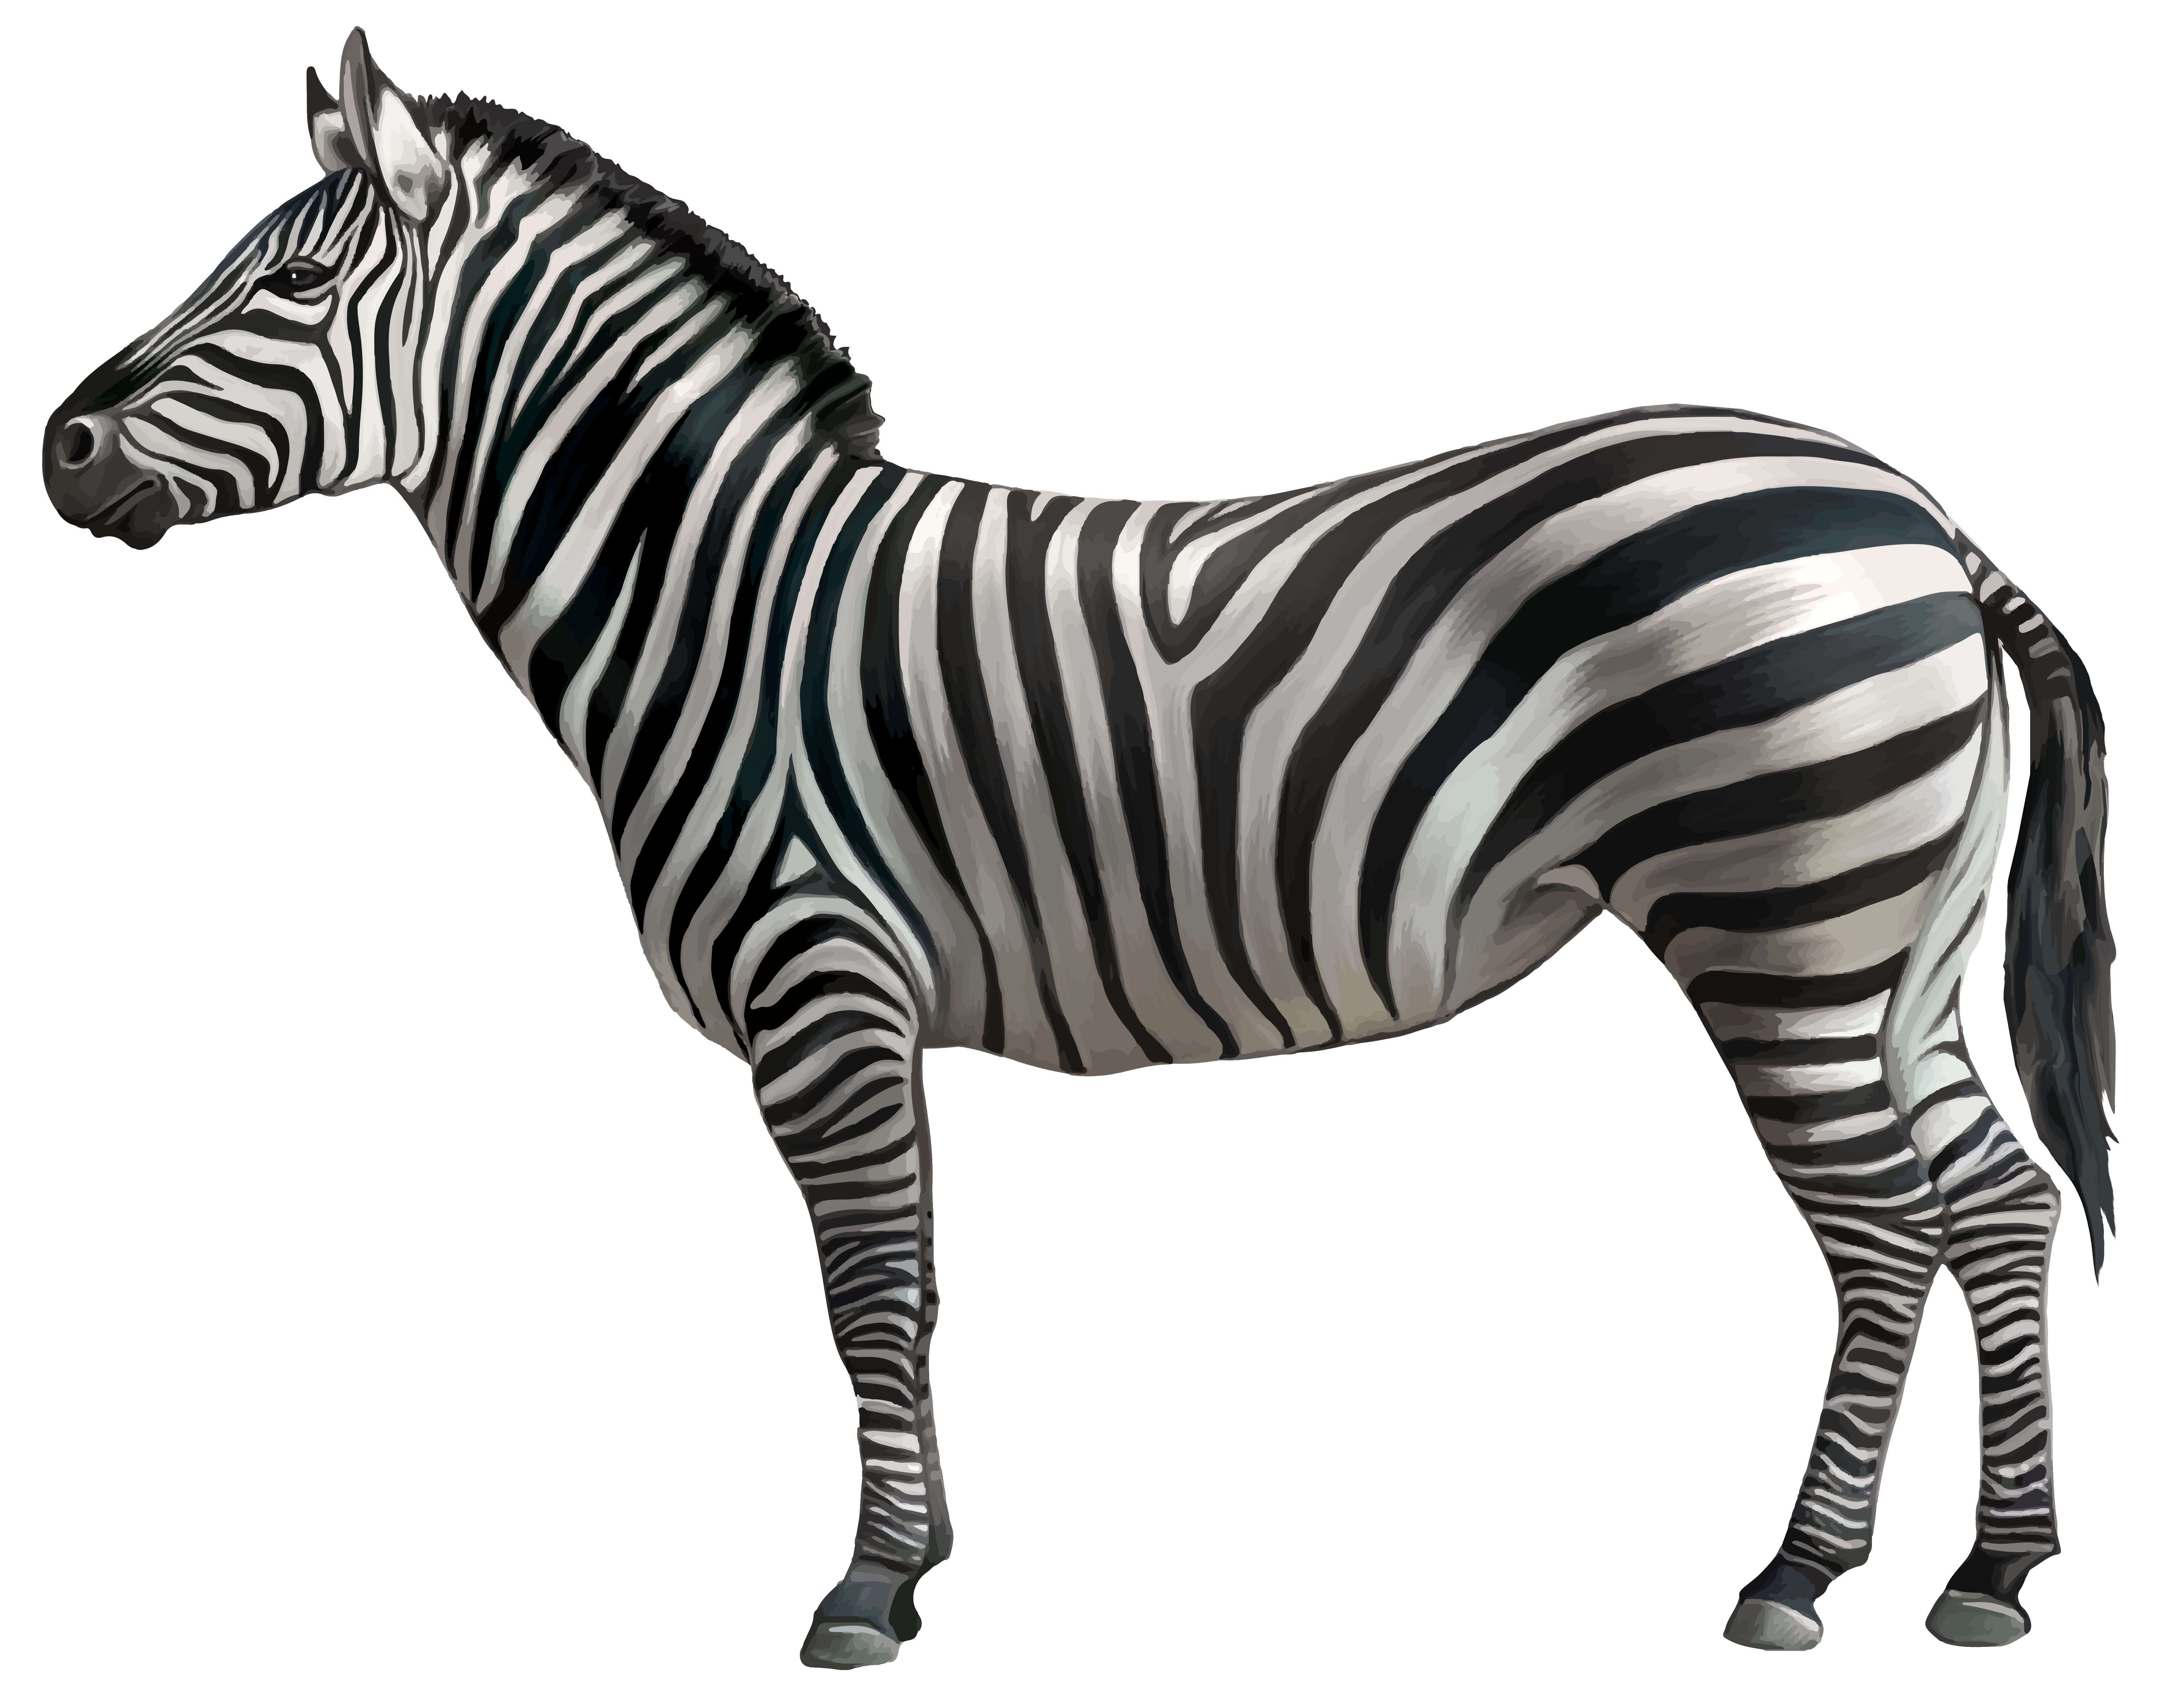 png stock African animal clipart. Zebra png image sonhi